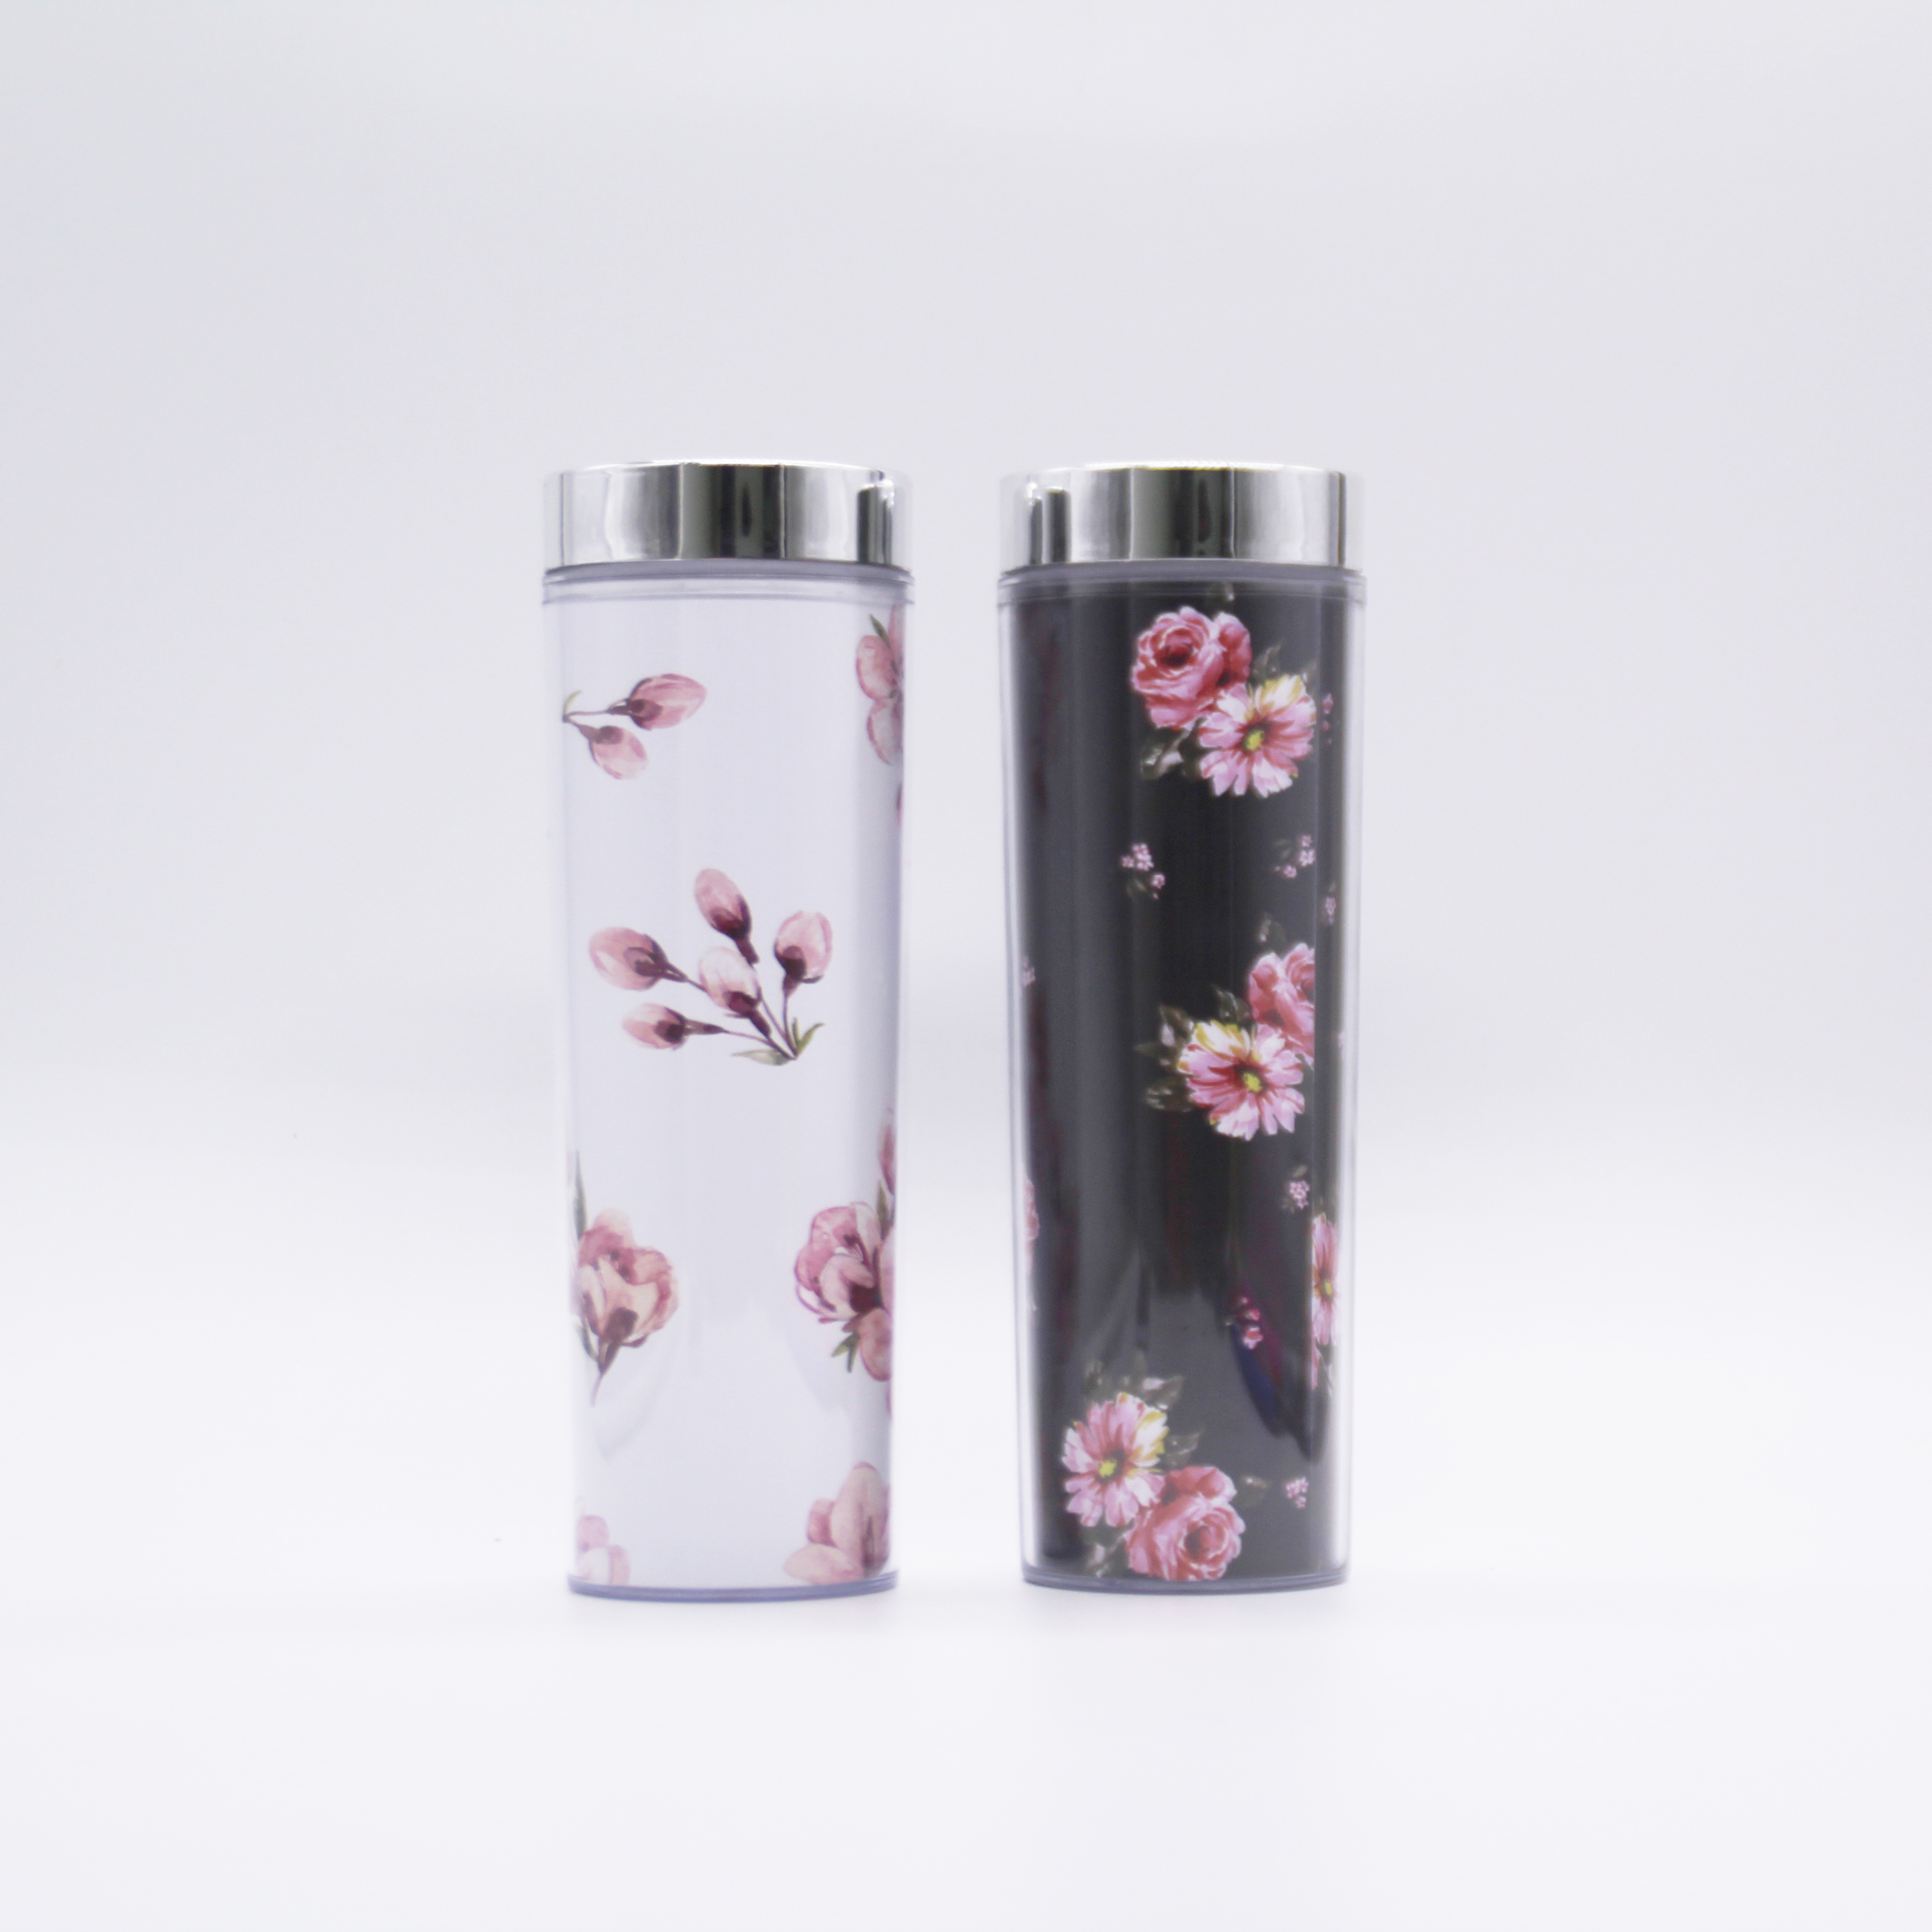 16oz Double Wall Clear Acrylic Skinny Tumbler With DIY paper Insert